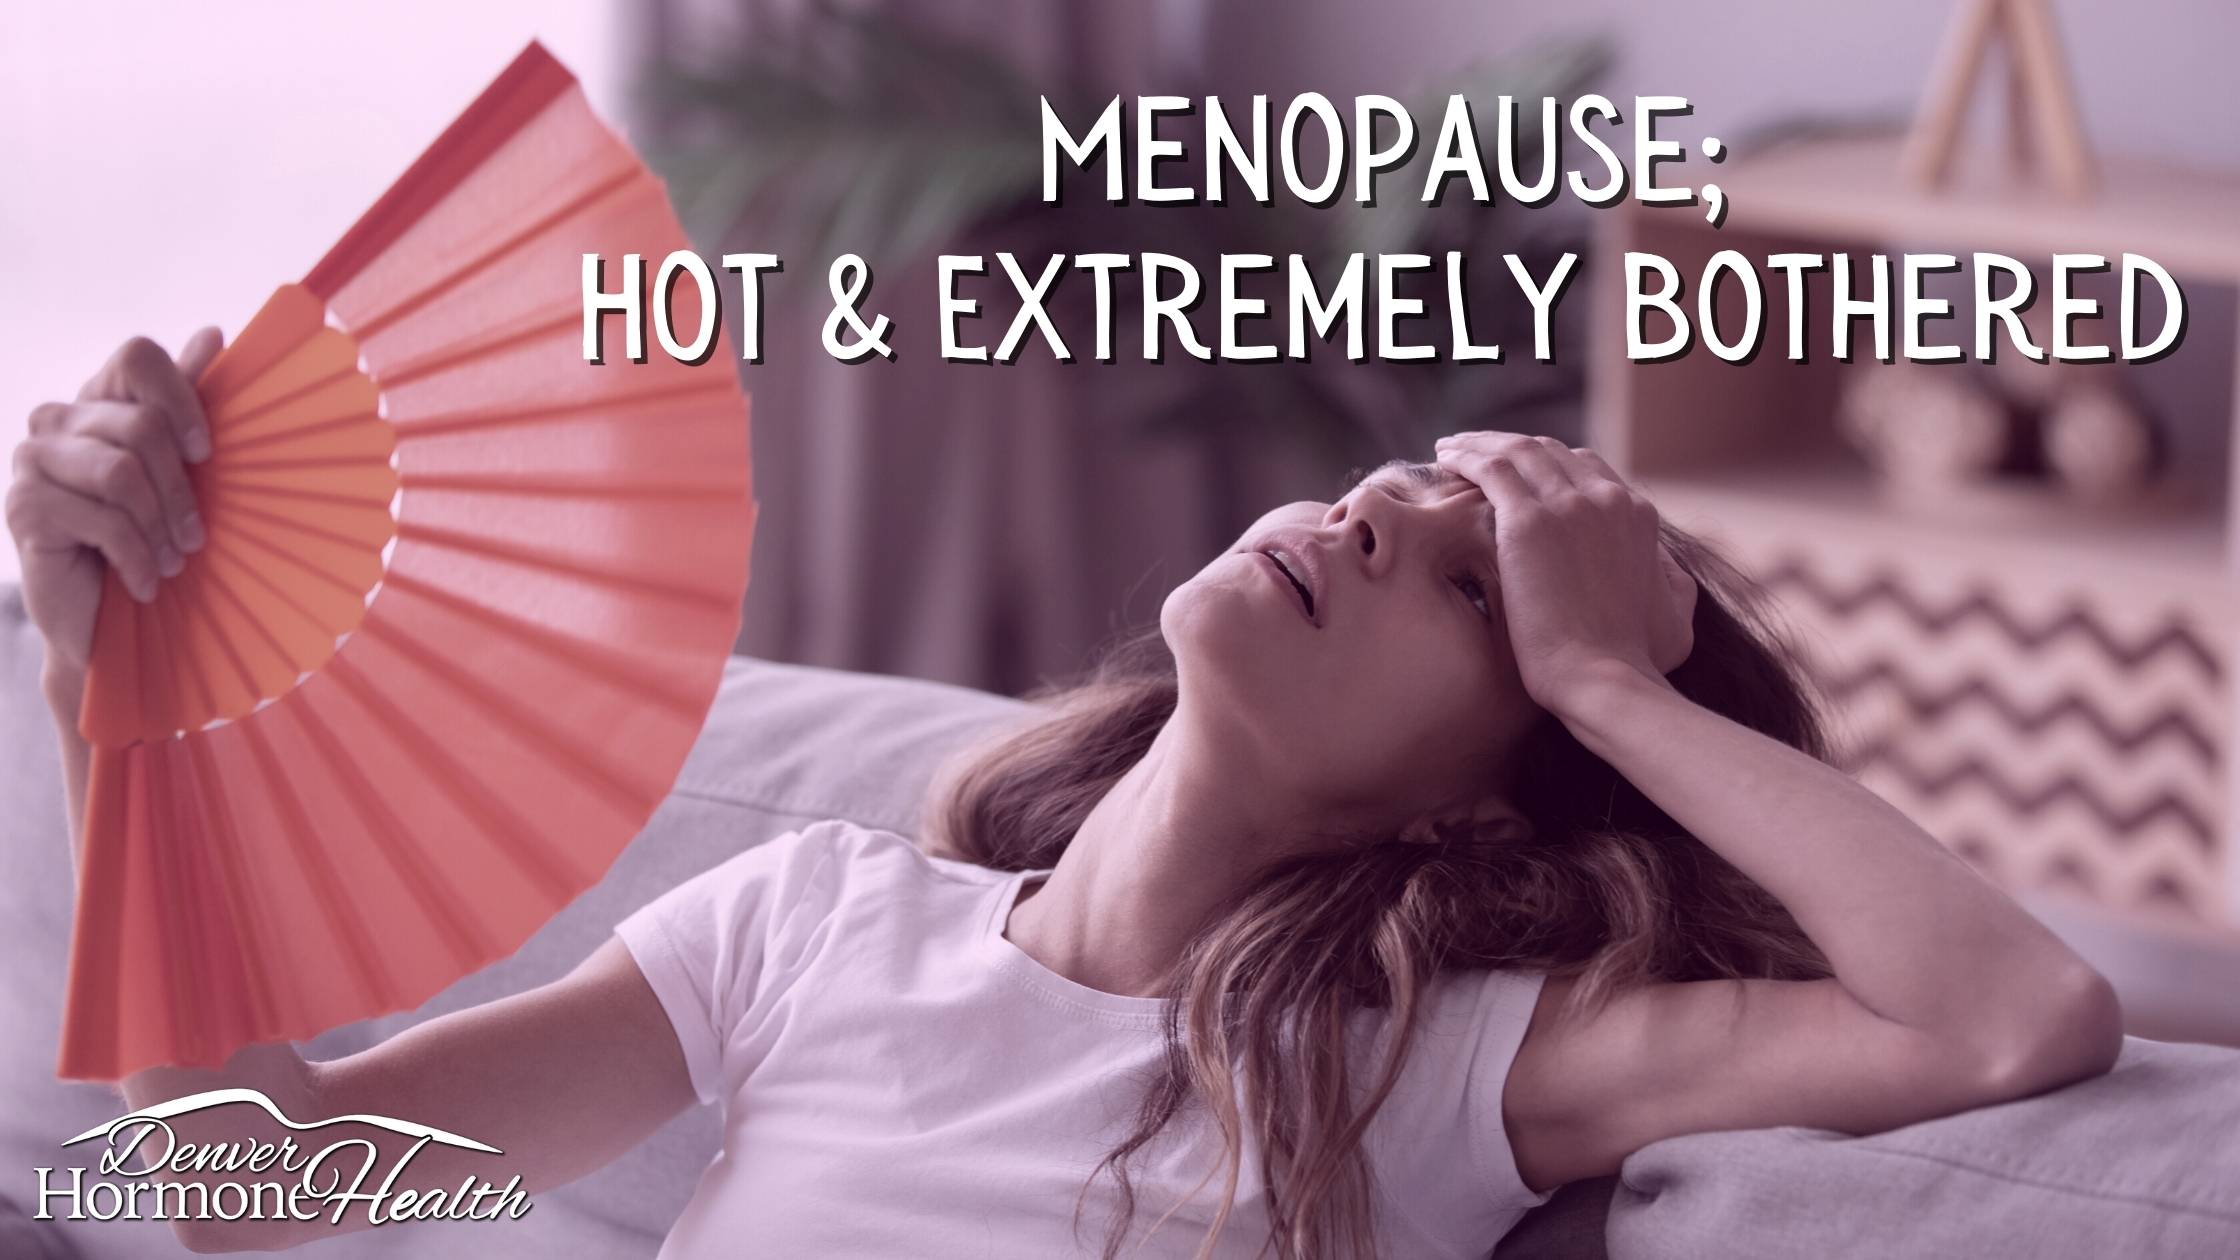 Menopause, Hot and Bothered